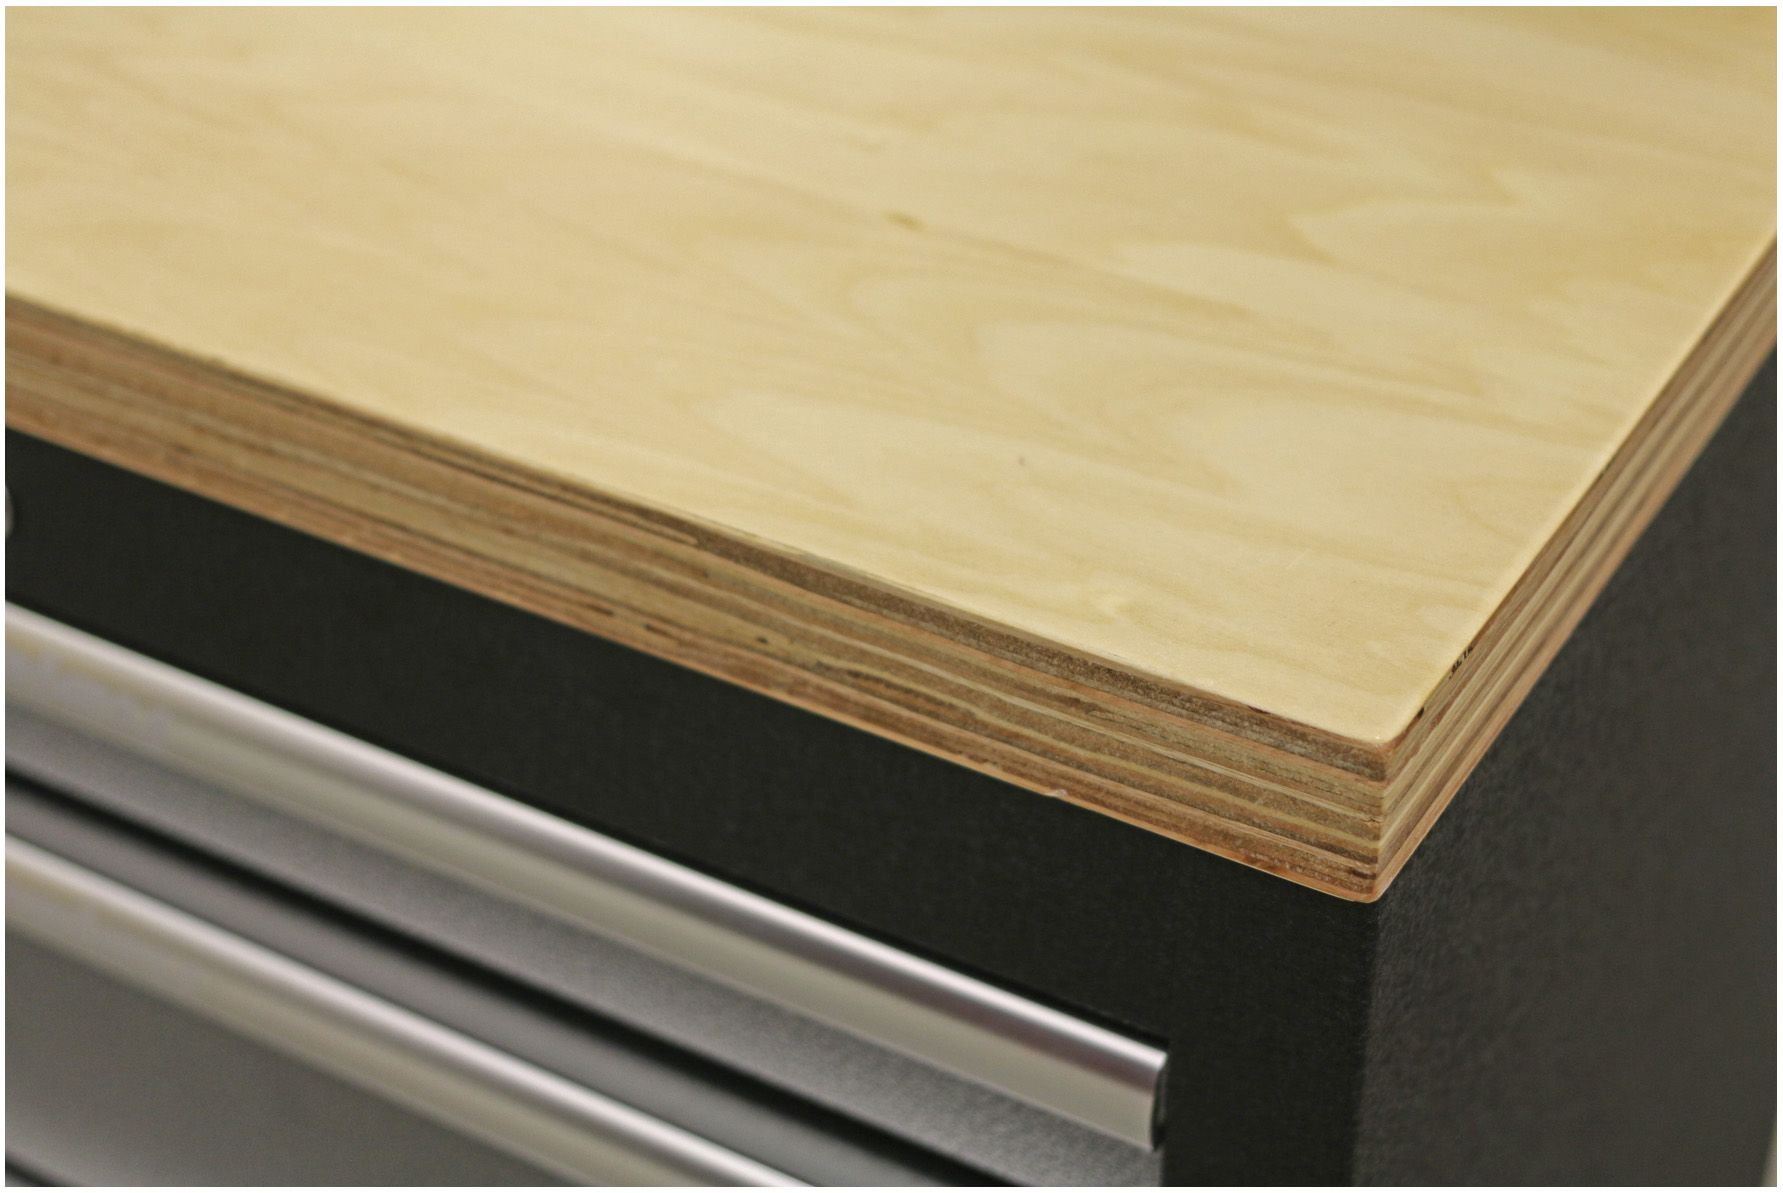 Sealey Superline Pro Pressed Wood Worktop 2040mm